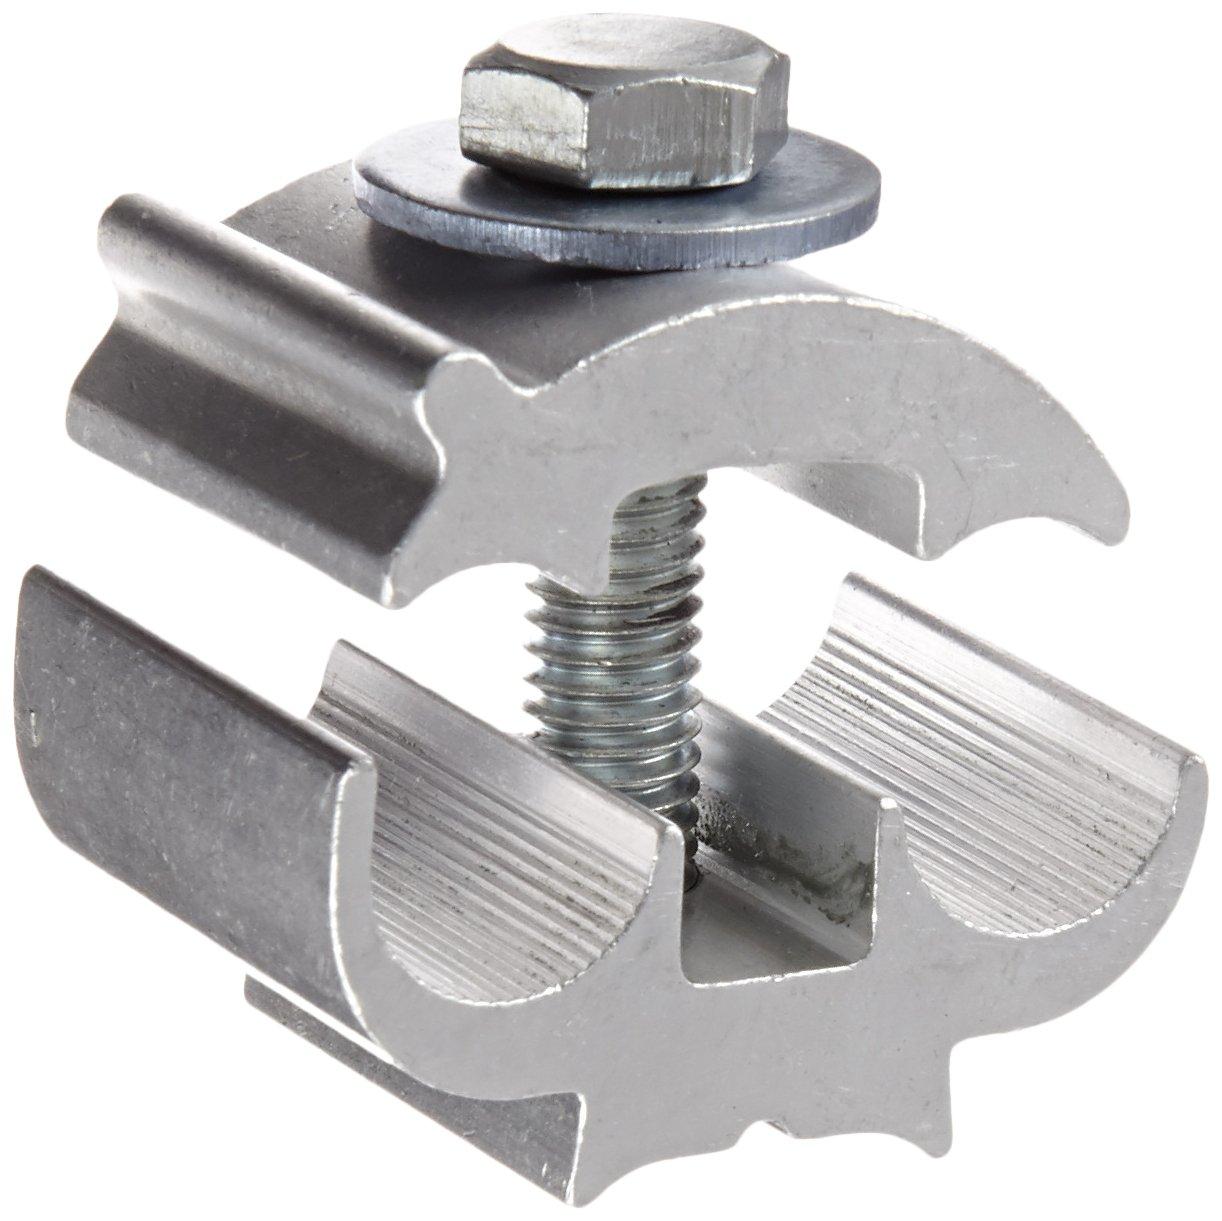 Utility Connector, Extruded Aluminum Parallel Groove Clamps, 2 sol - 4/0 str, 4-4/0 ACSR, 6-4 str AR A Main, 0.250''/0.563'' Wire Diameter Range, 2 sol - 4/0 str, 4-4/0 ACSR, 6-4 str AR B Tap, 0.250''/0.563'' Bolt Range, 3/8'' Size, 1-5/16'' Width, 1-1/2'' Lengt